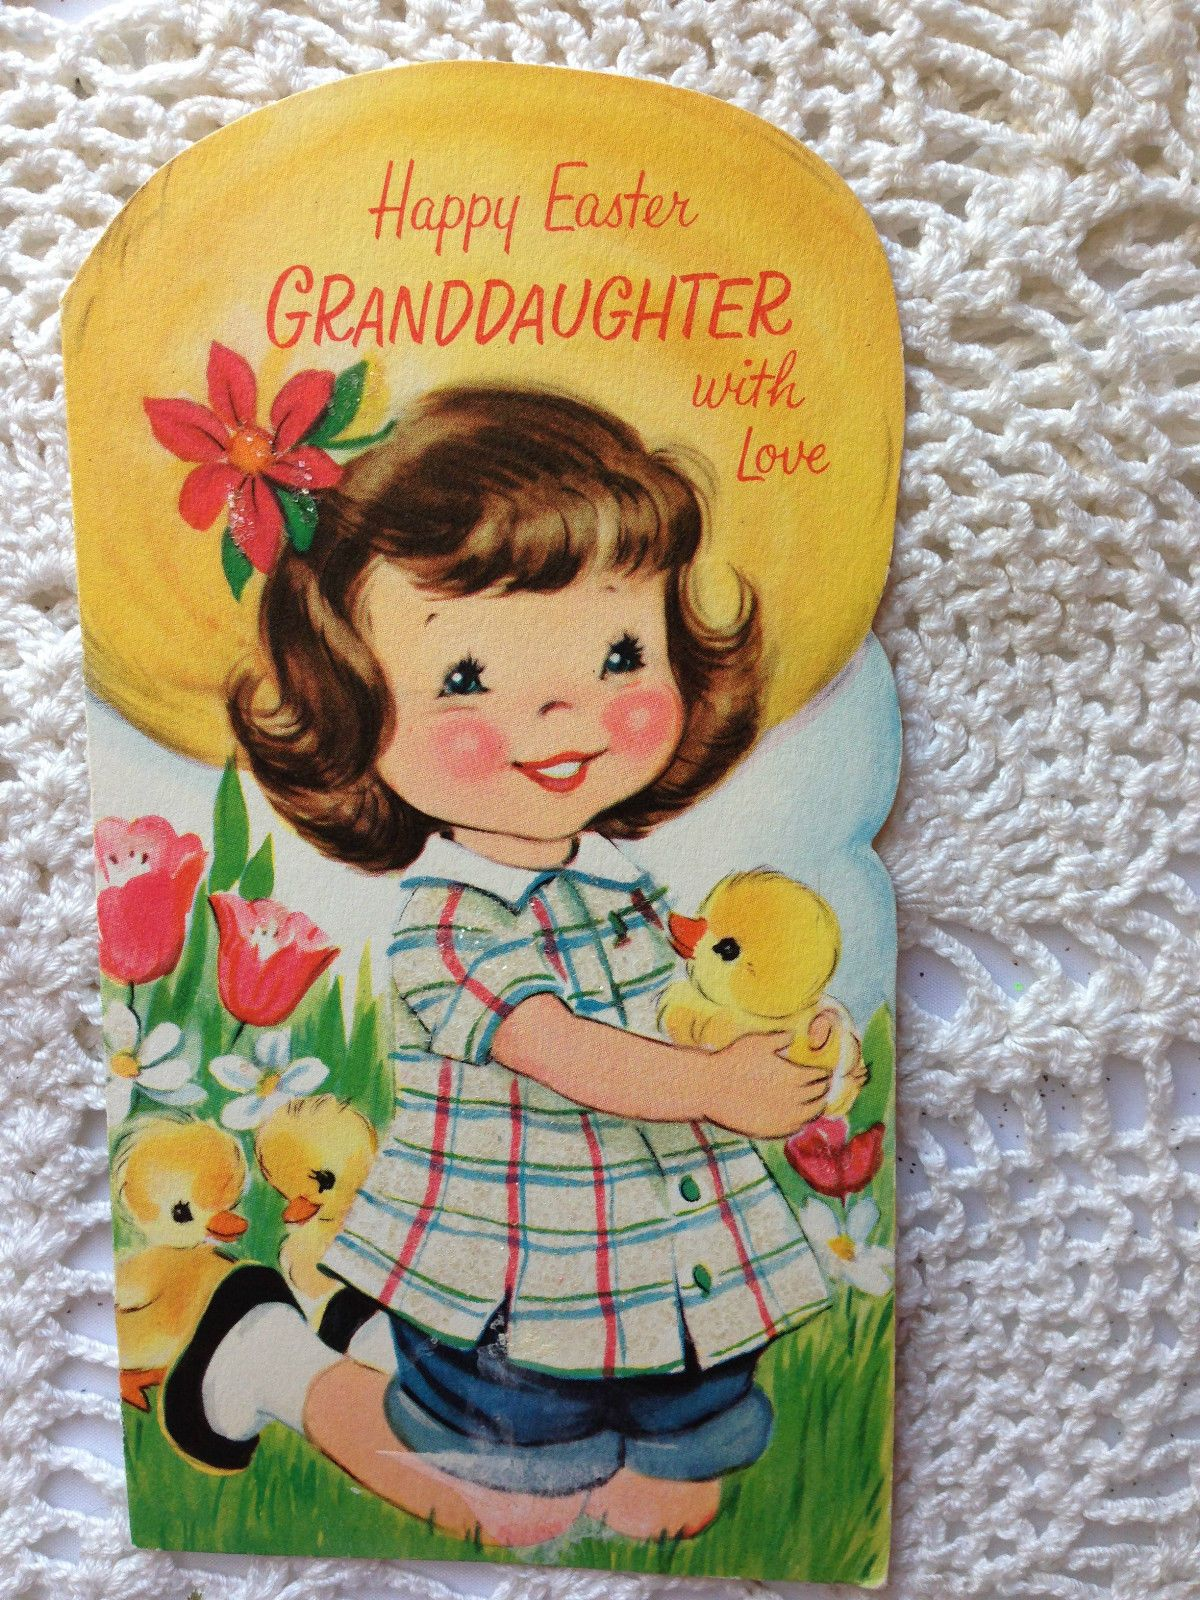 Vintage paramount easter die cut greeting card girl with ducks vintage paramount easter die cut greeting card girl with ducks glitter eb5103 ebay kristyandbryce Image collections